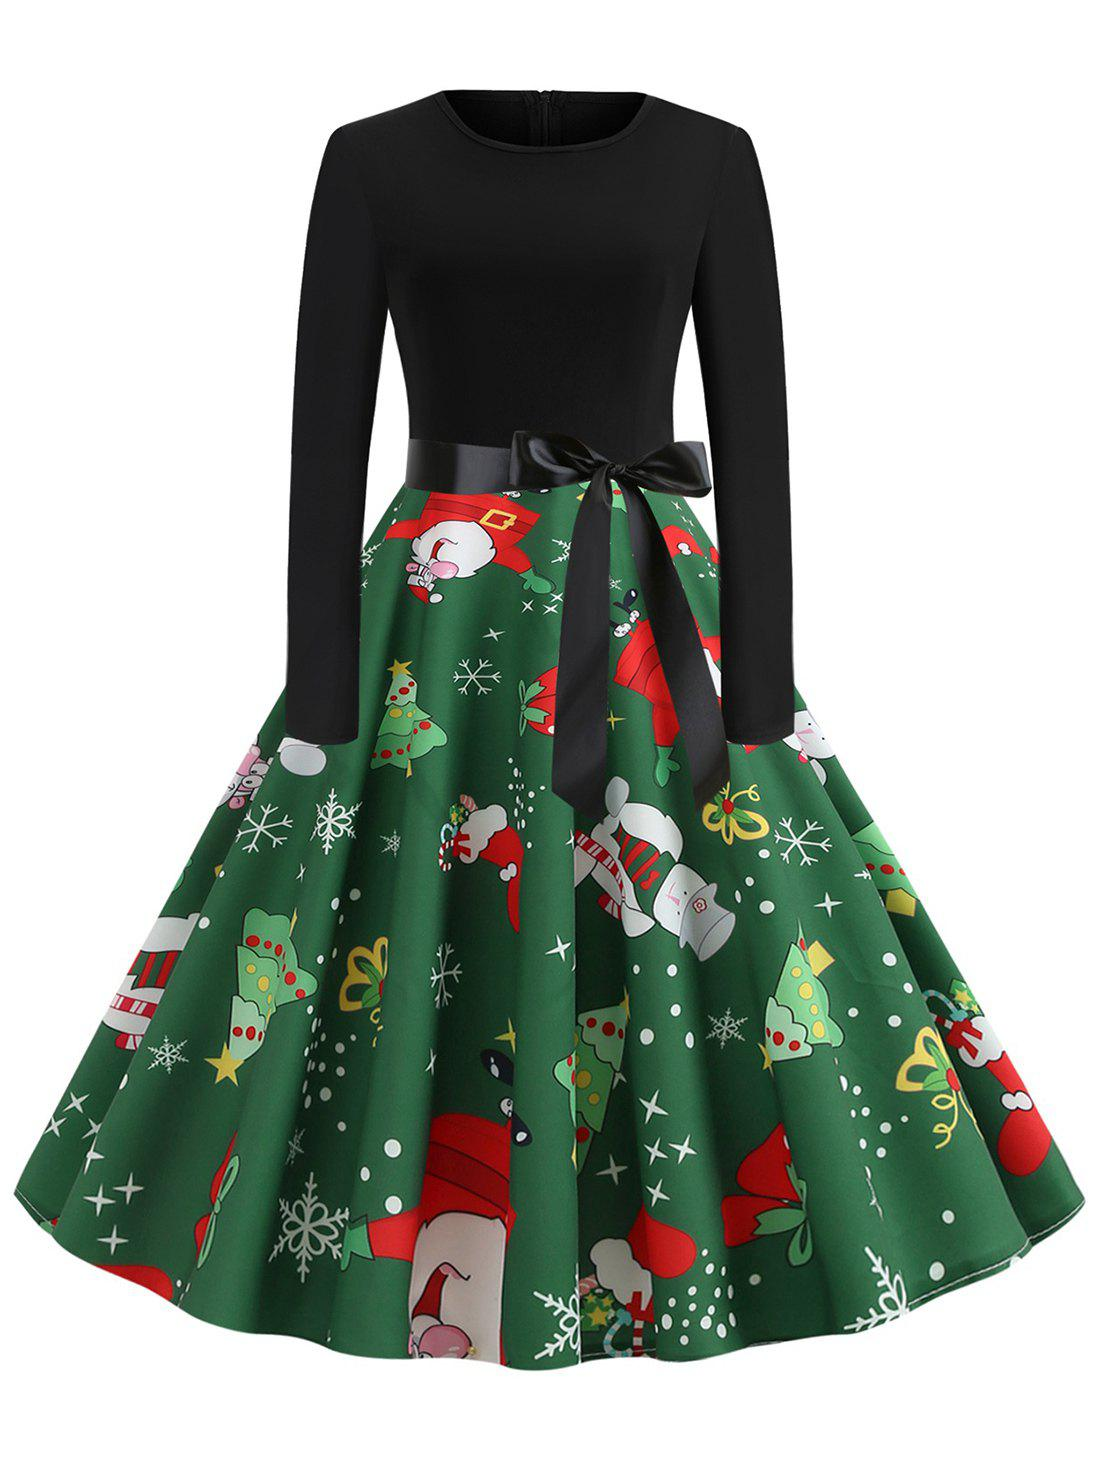 Chic Plus Size Vintage Christmas Printed Party Swing Dress